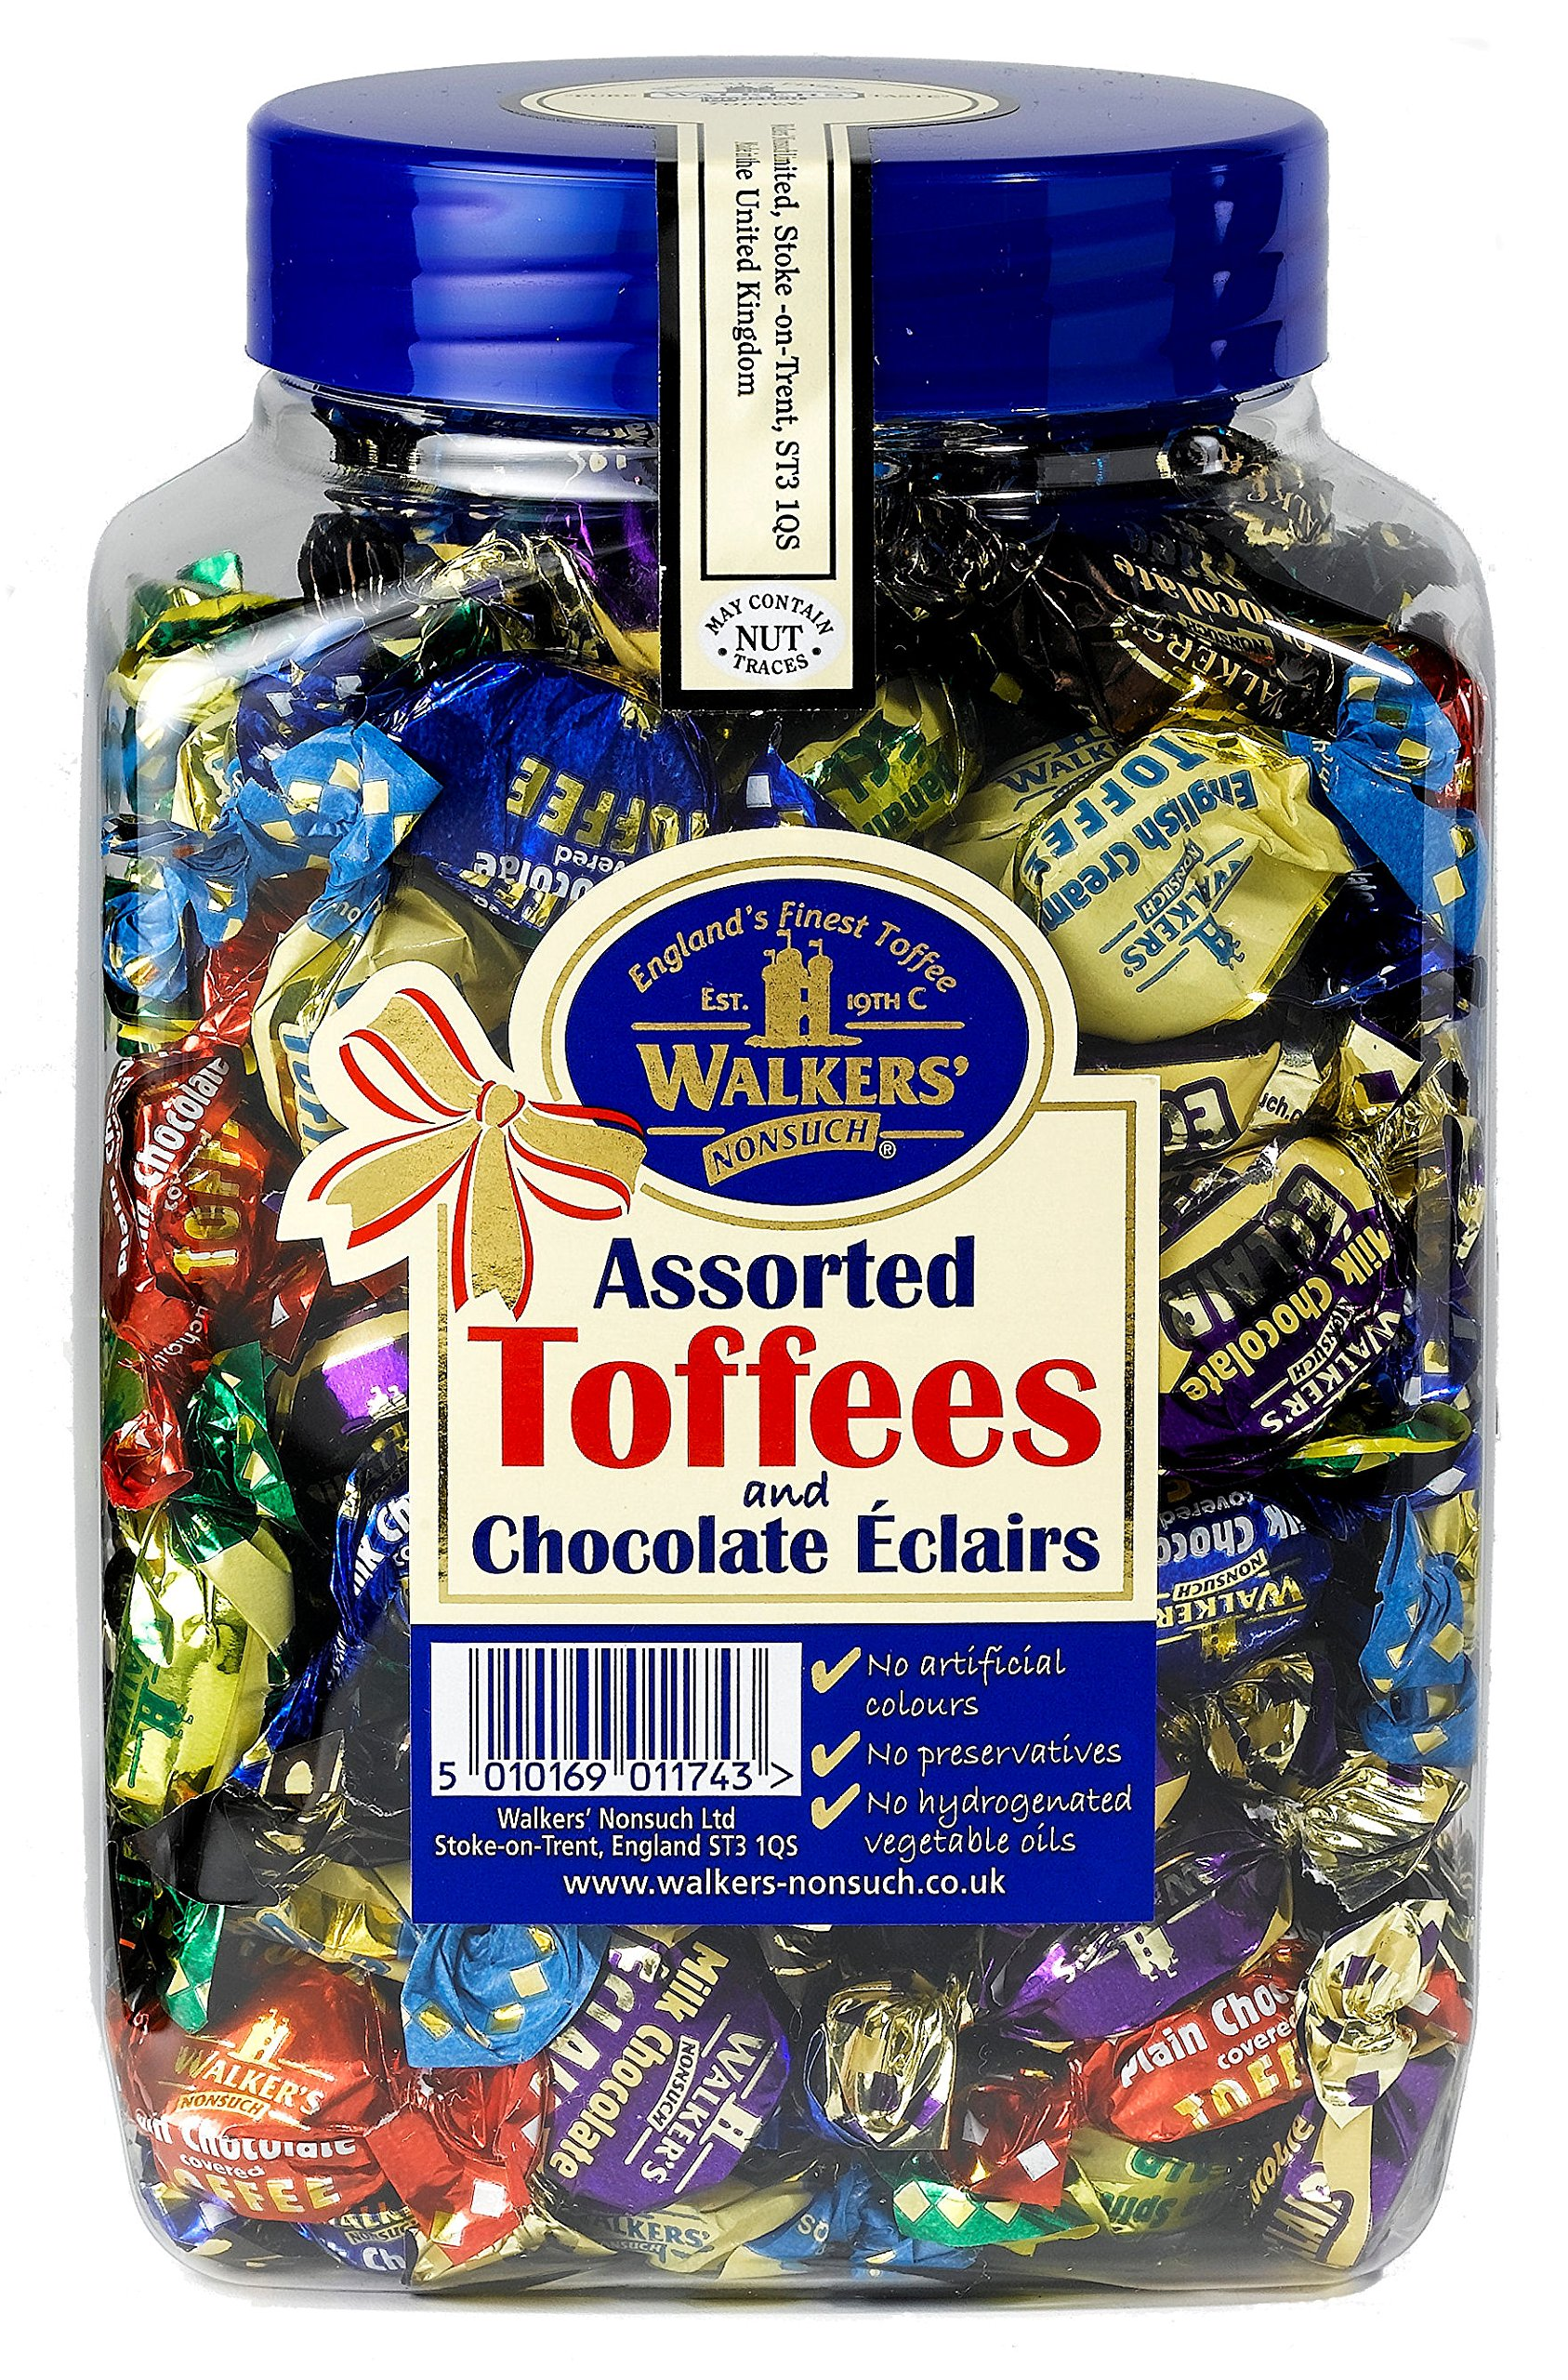 WALKERS NONSUCH Assorted Toffees and Chocolate Eclairs, 1.25Kg by Walker's Nonsuch